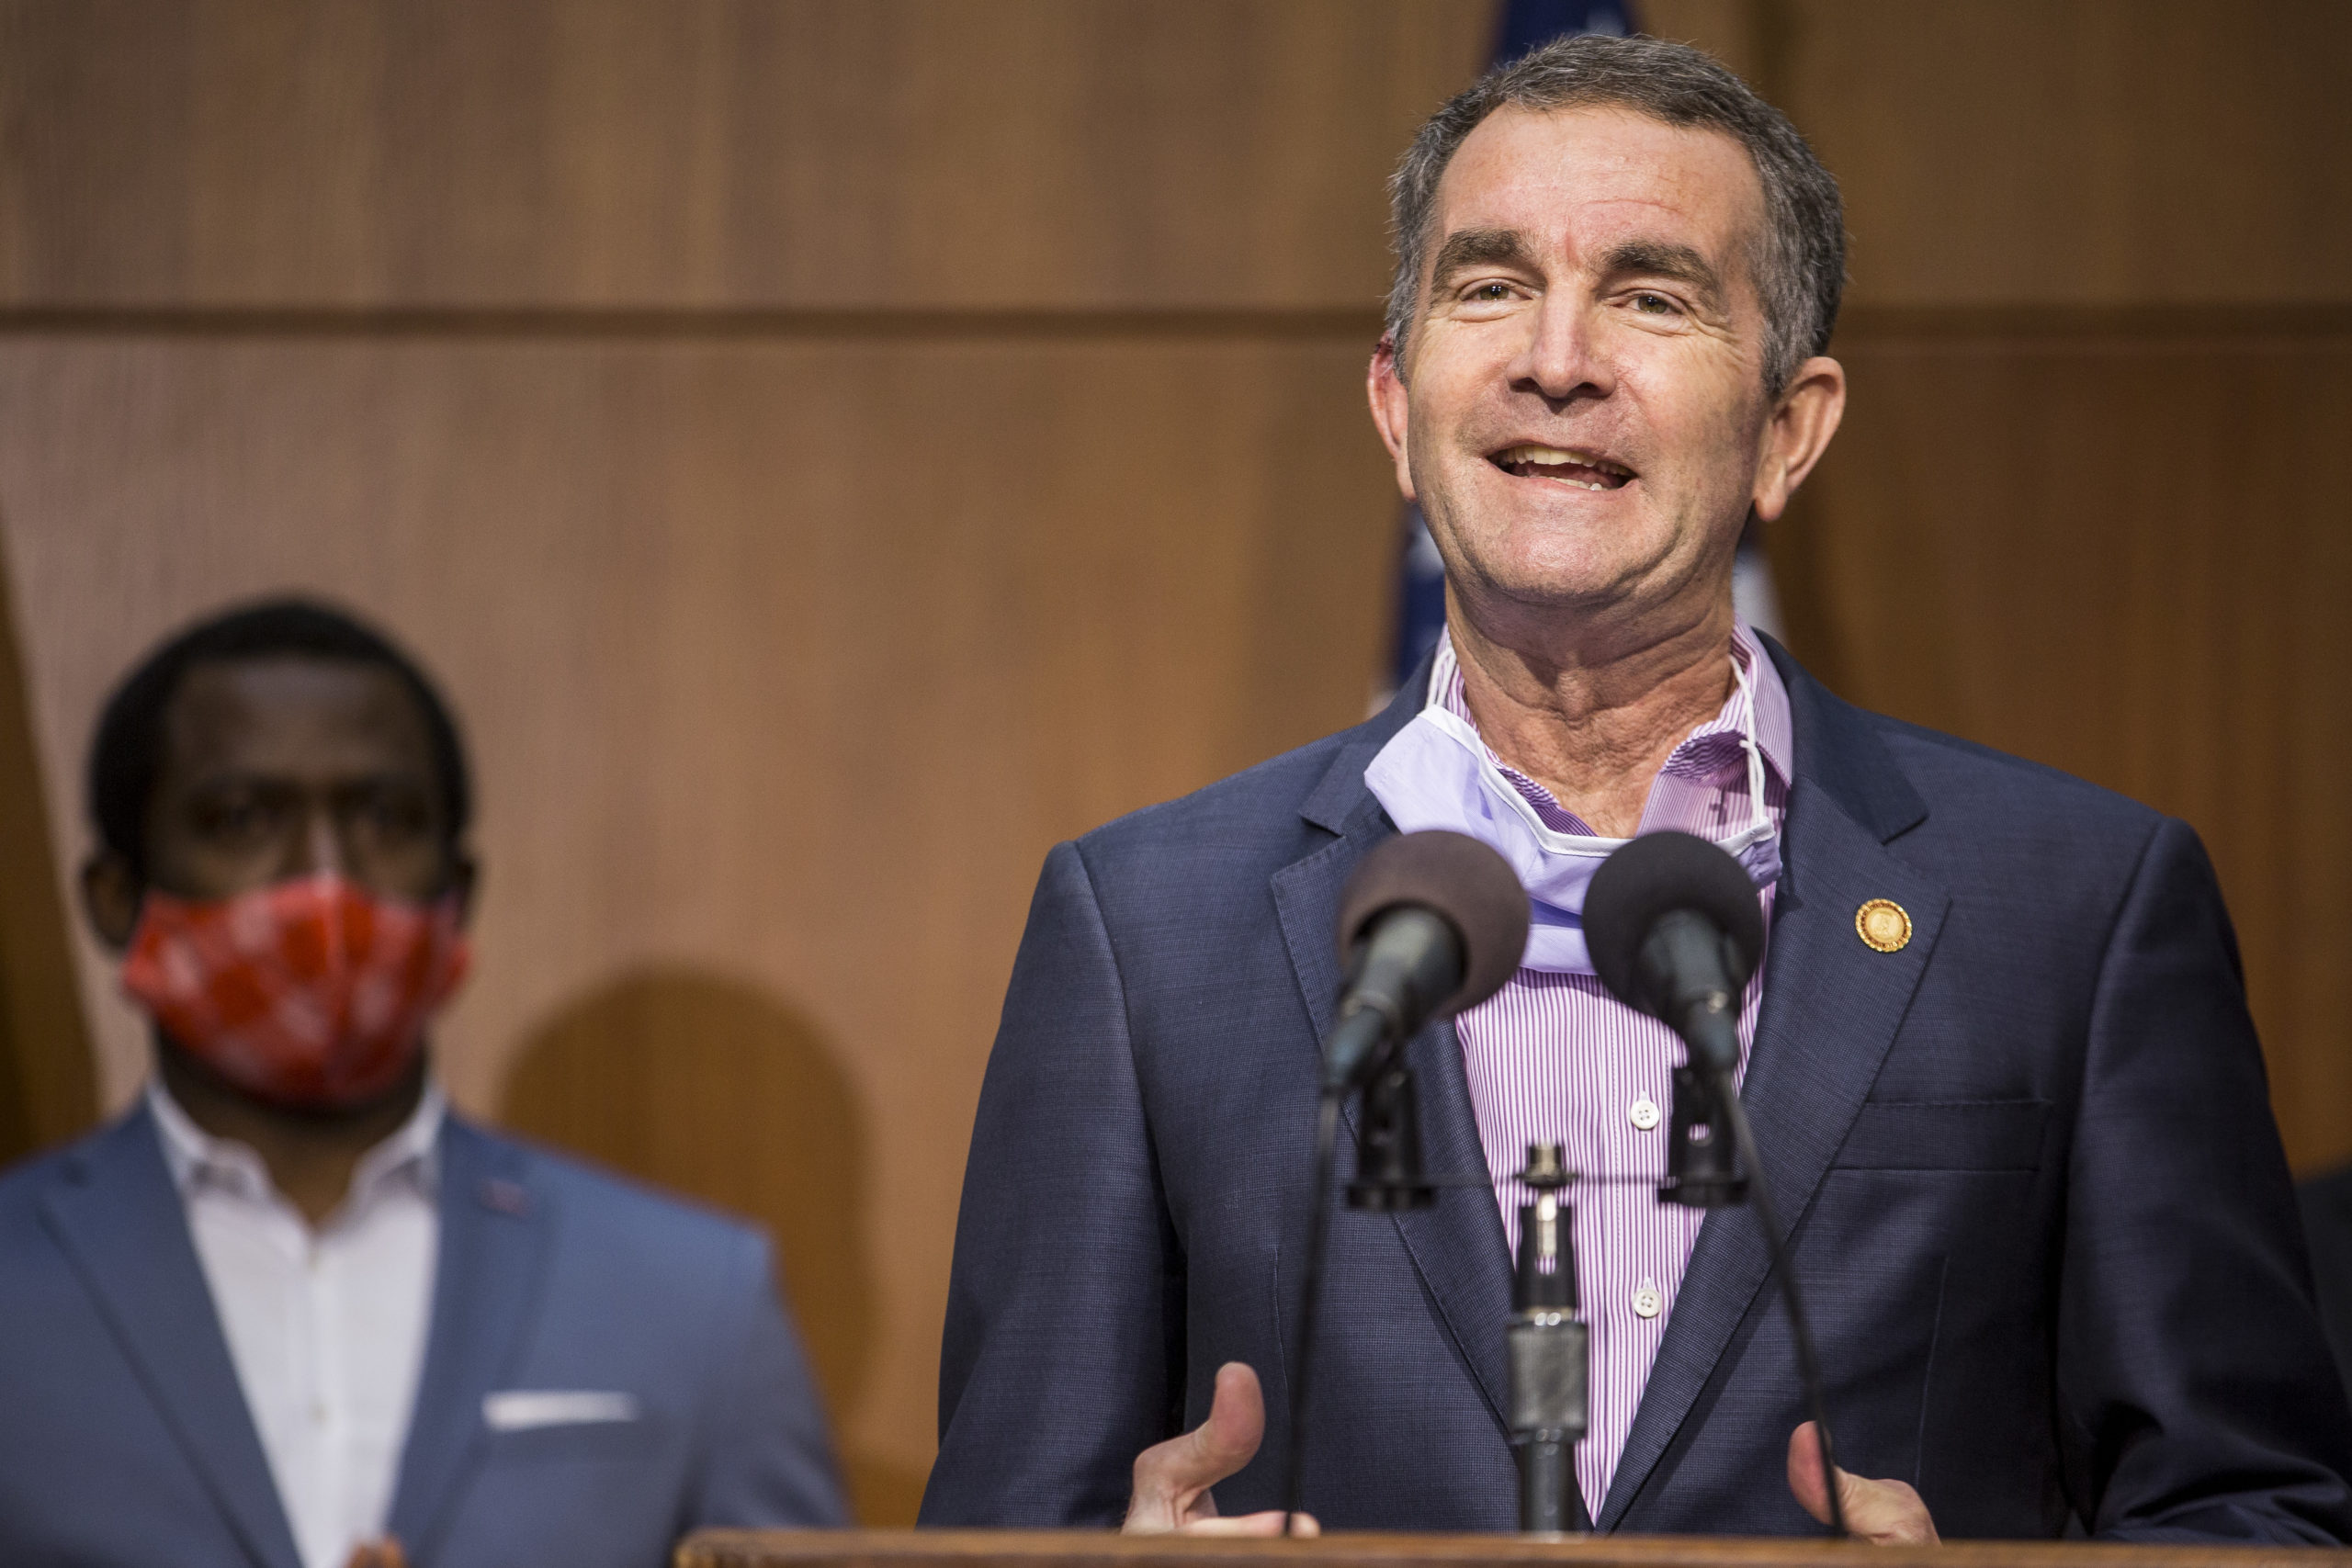 Virginia Gov. Ralph Northam speaks during a news conference on June 4, 2020 in Richmond, Virginia. (Zach Gibson/Getty Images)